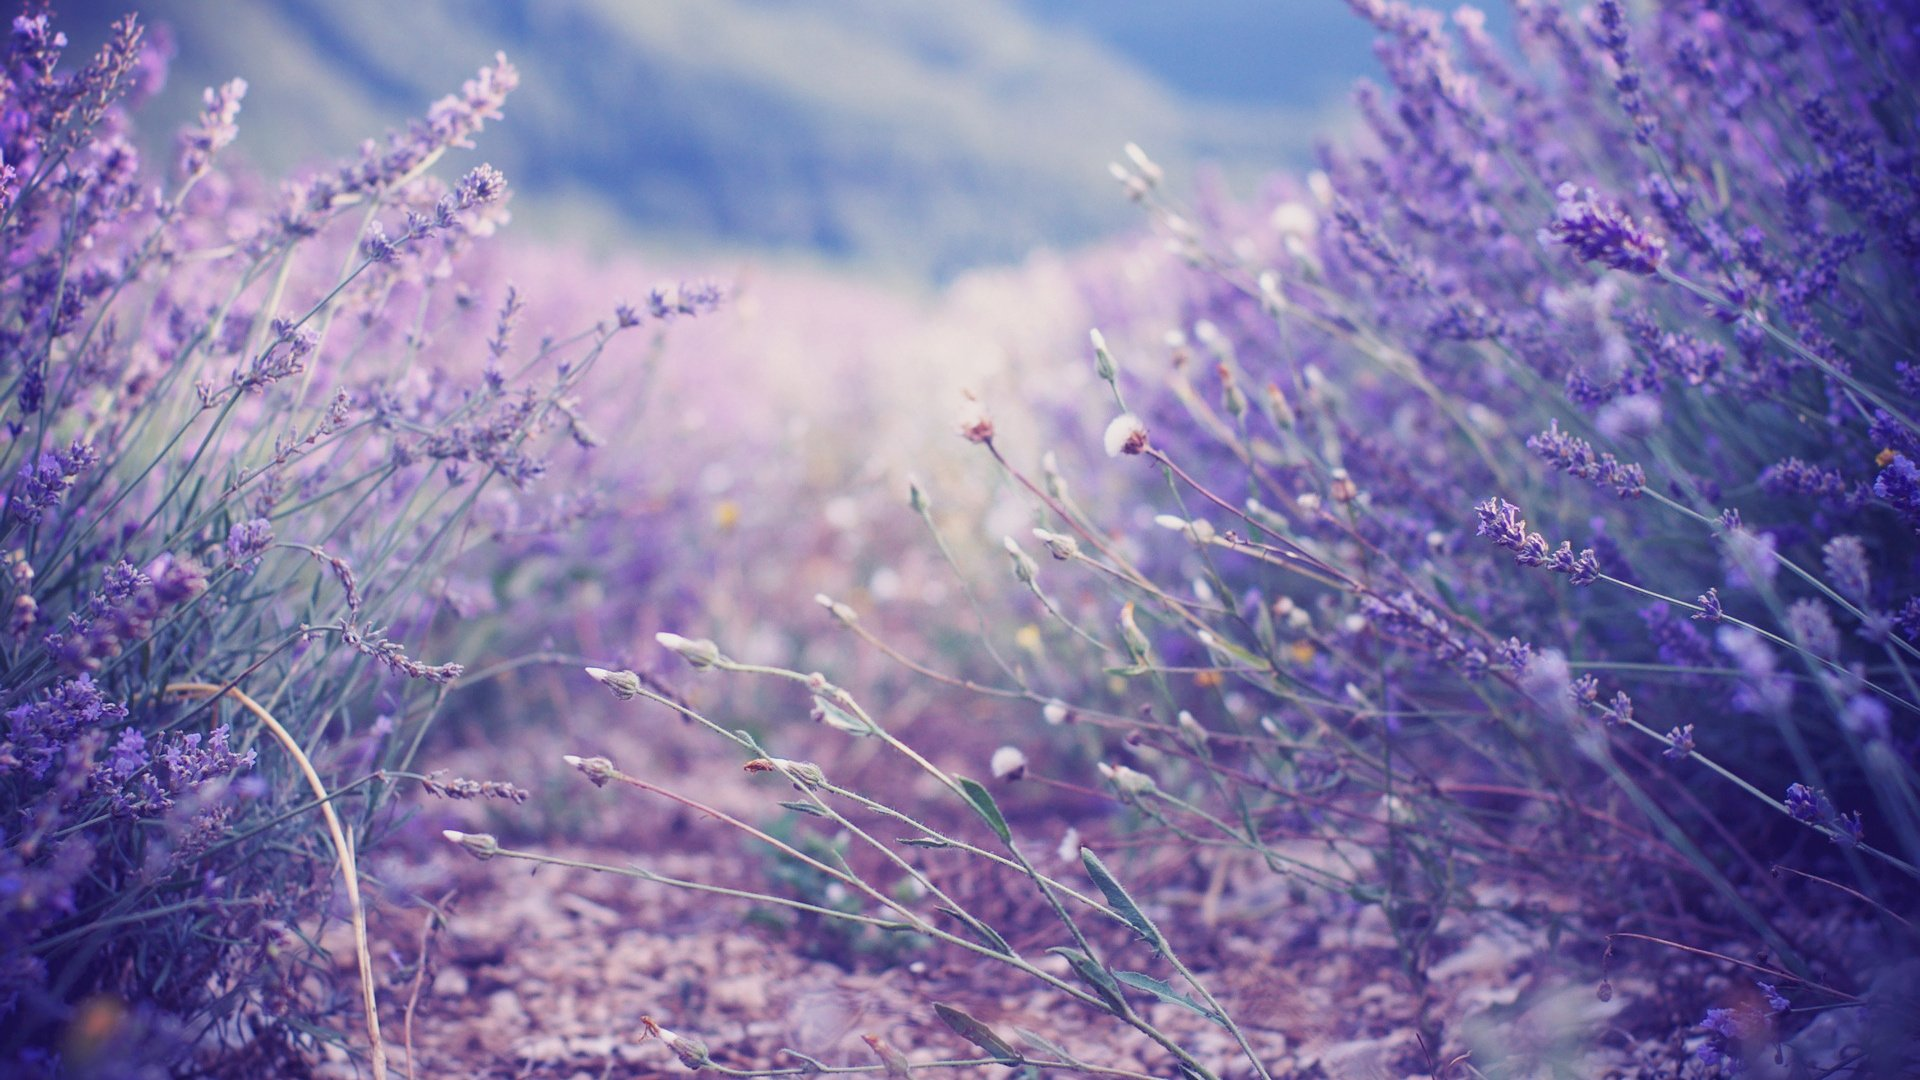 Lavender Flowers Wallpapers   Wallpaper High Definition 1920x1080